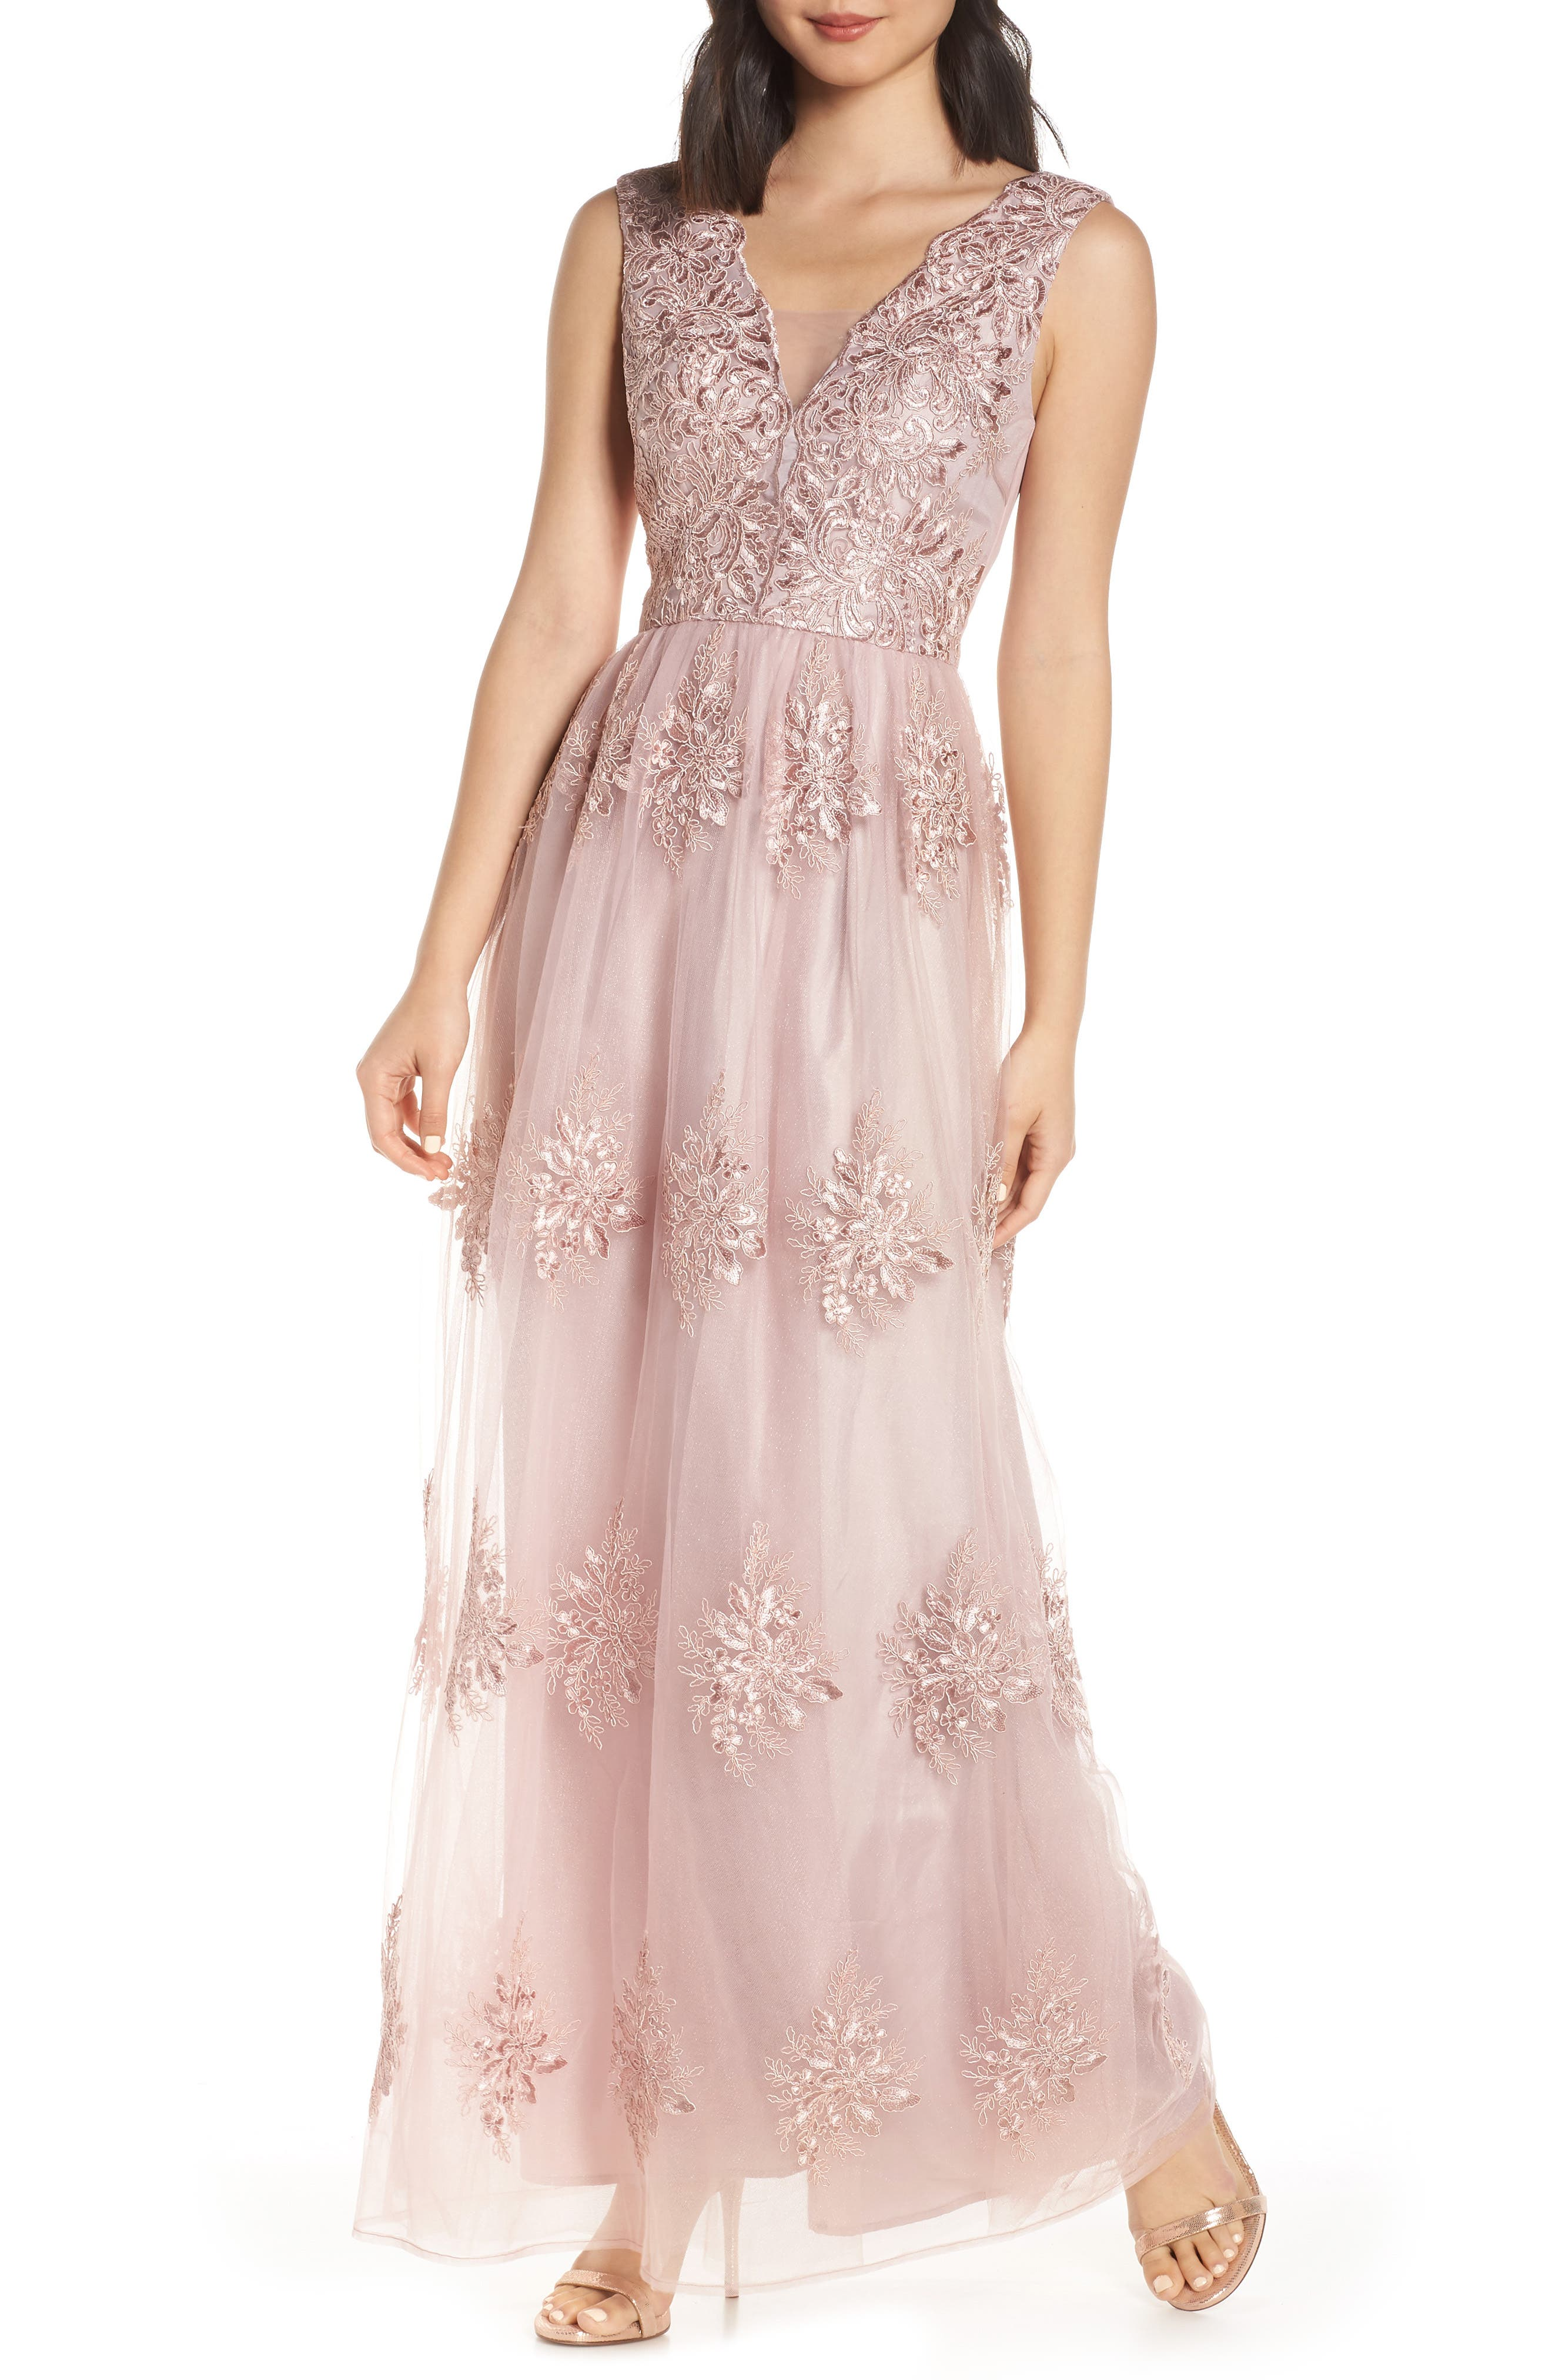 Chi Chi London Aubree Embroidered Evening Dress, Pink